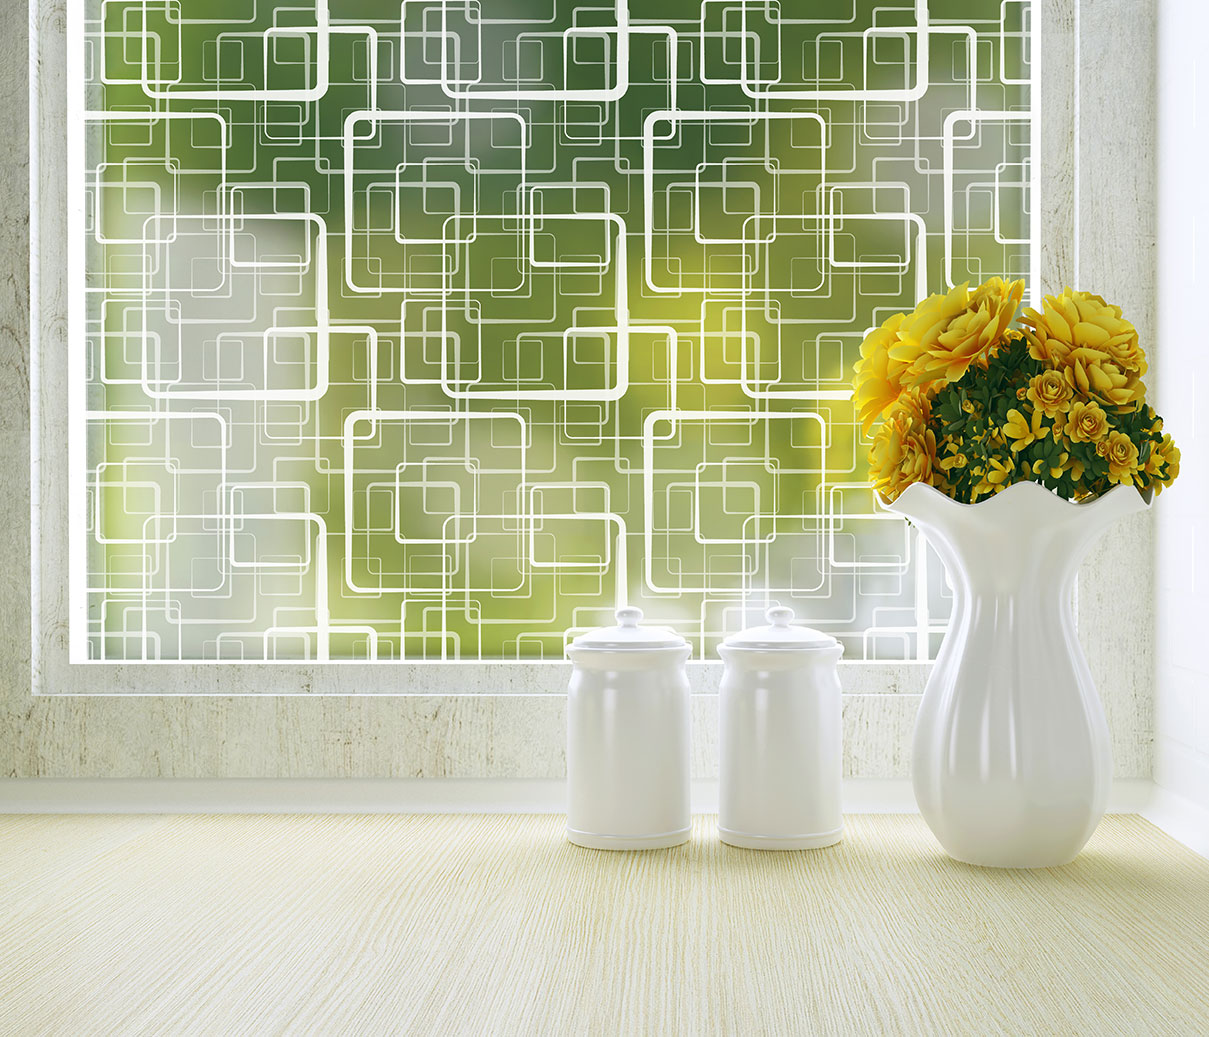 Retro Squares | Modern Window Film & Decorative Film For Residential ...